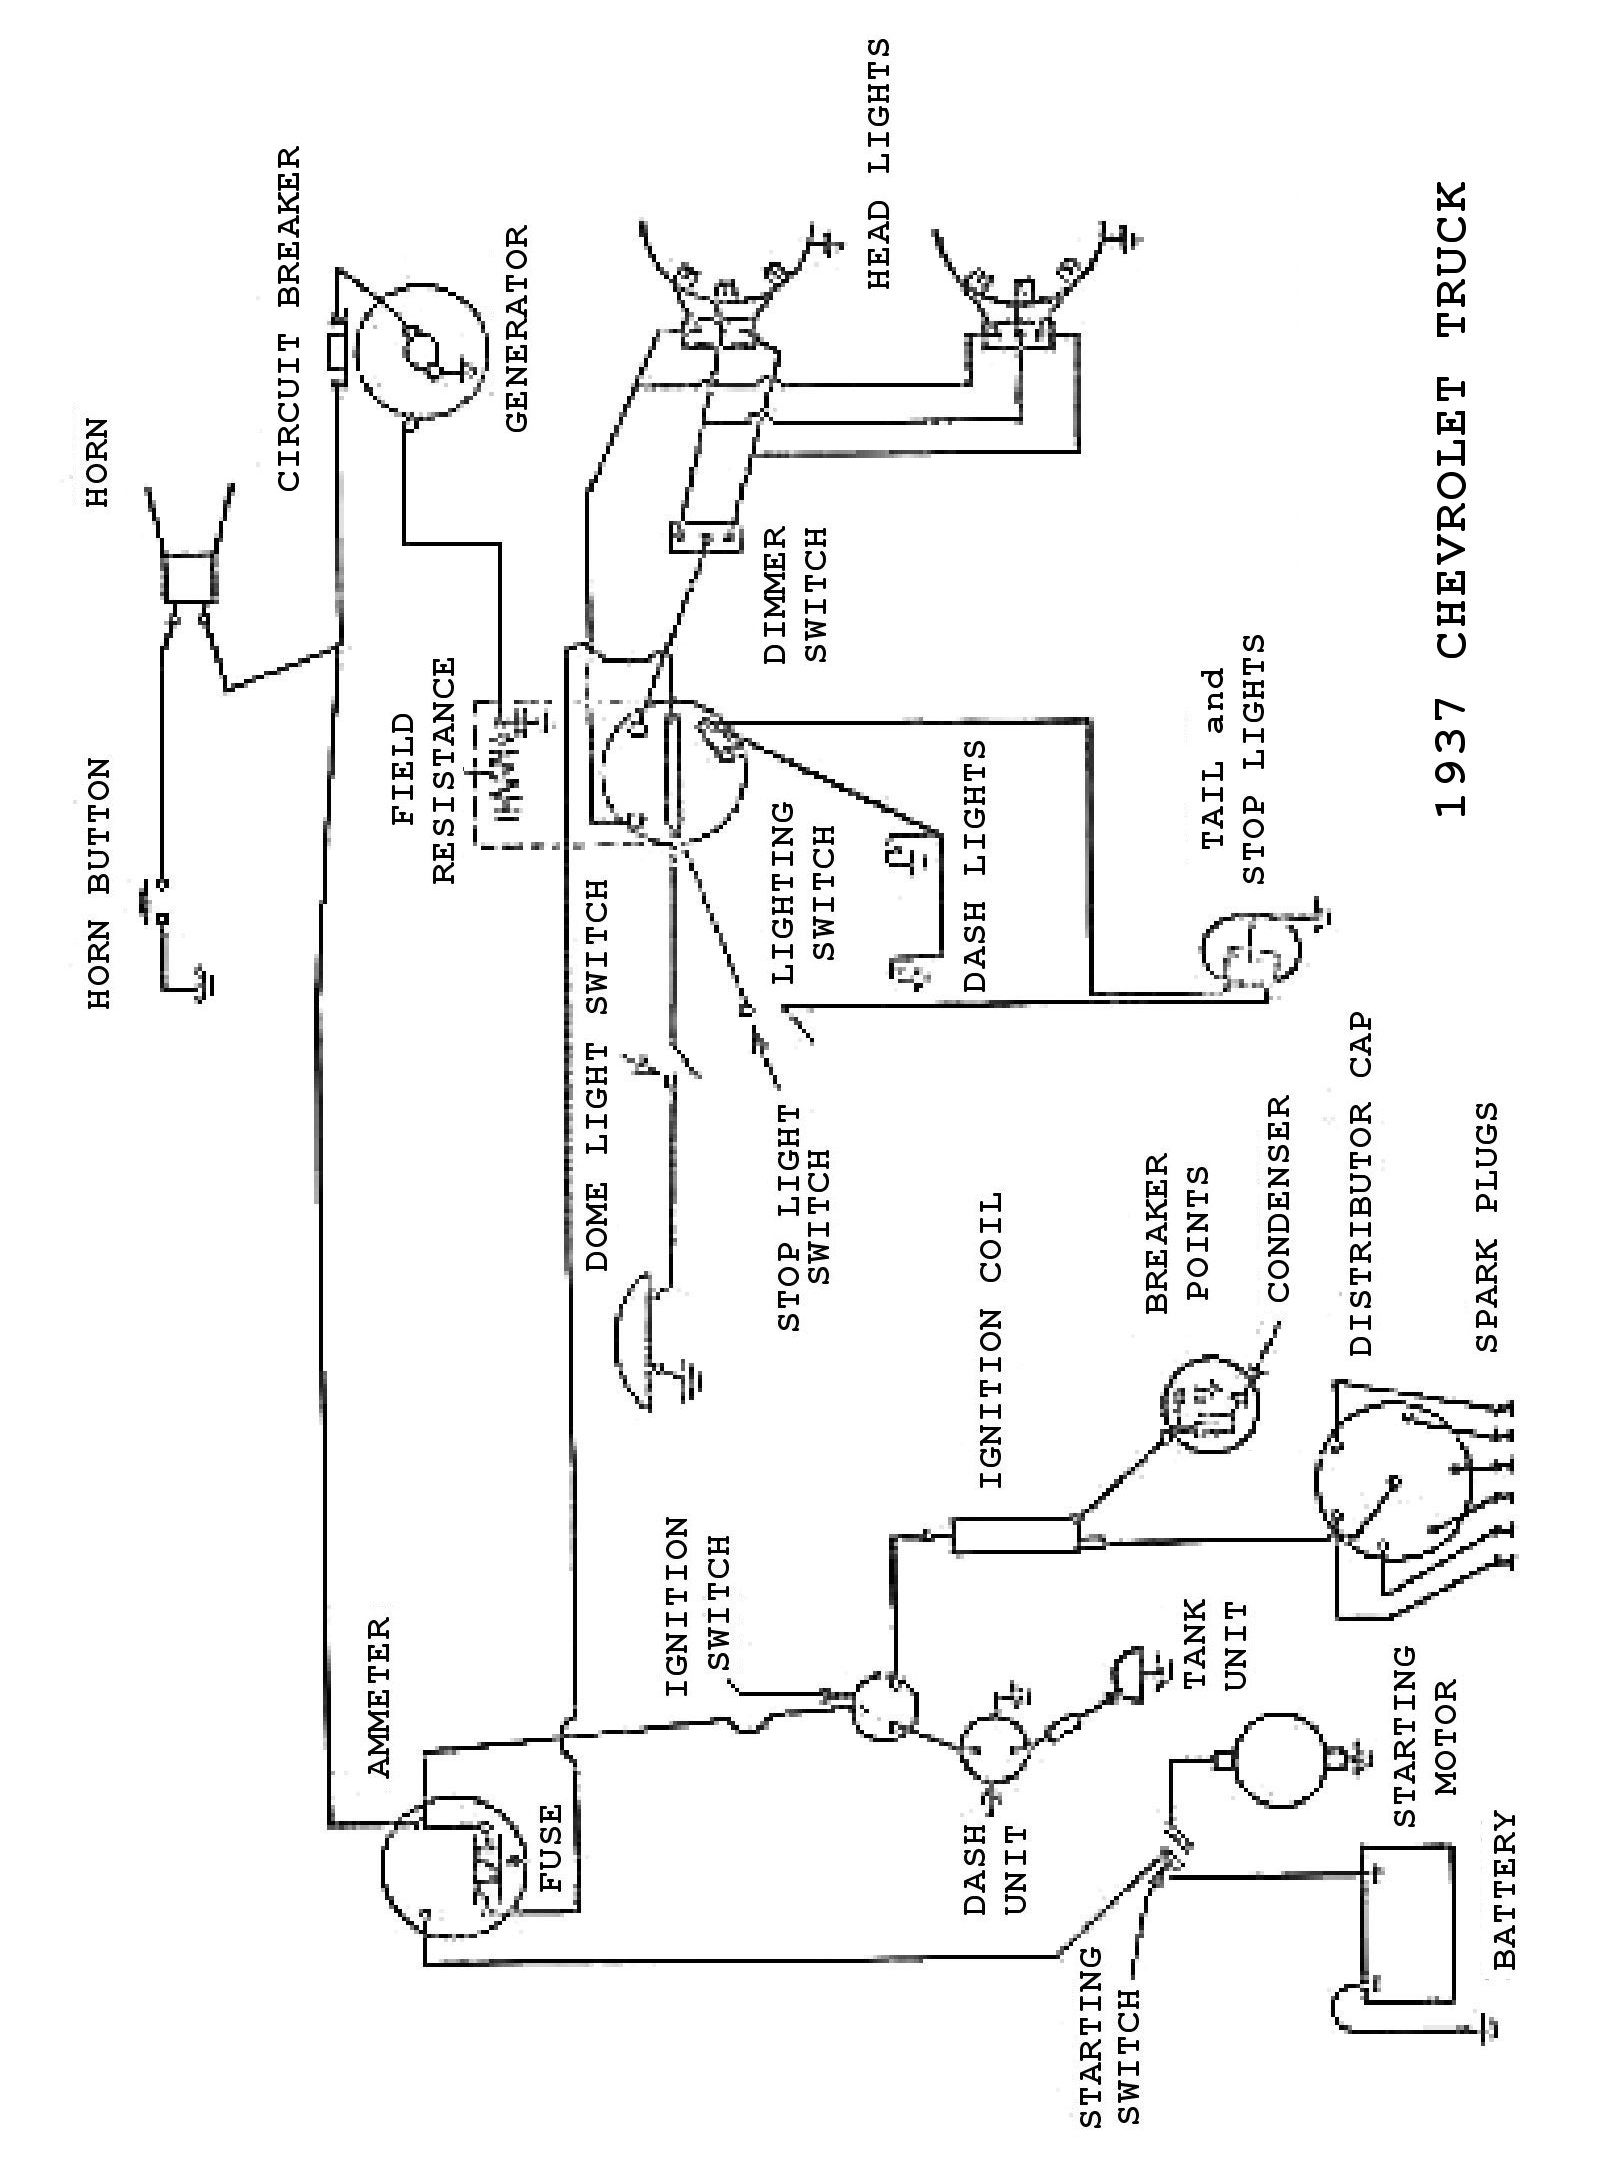 03 Silverado Dome Light Wiring Schematic Start Building A 1997 Gmc Yukon Schematicdome Courtesy Circuit Chevy Diagrams Rh Oldcarmanualproject Com Corolla Diagram